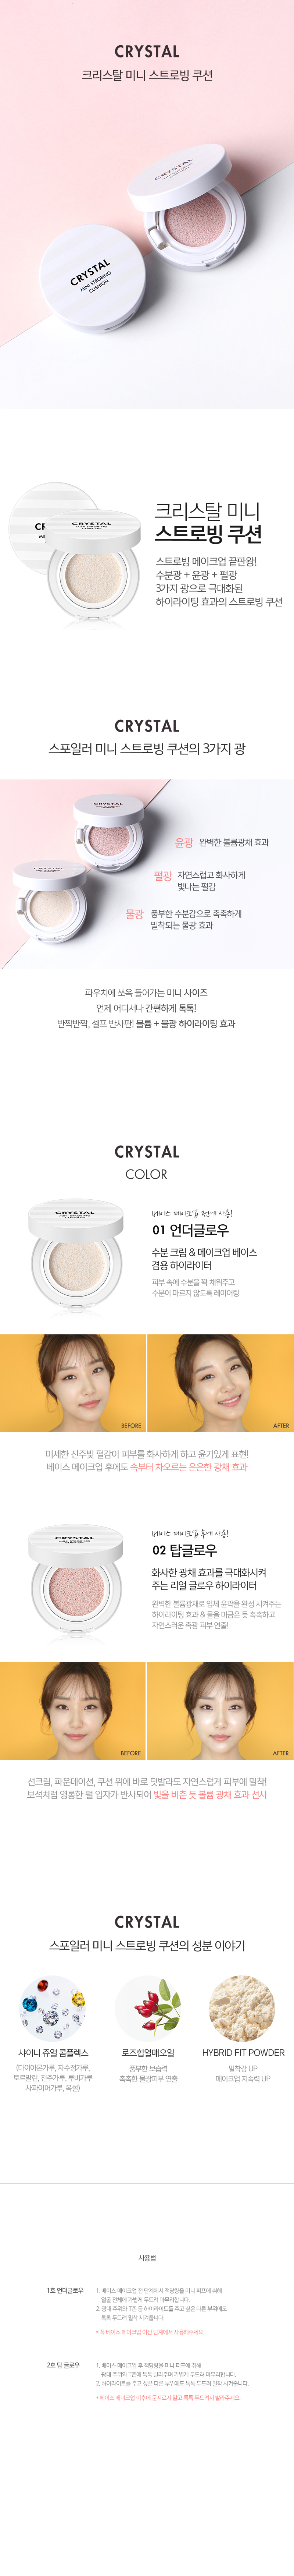 Tony Moly Crystal Mini Strobing Cushion 9g malaysia singapore indonesia